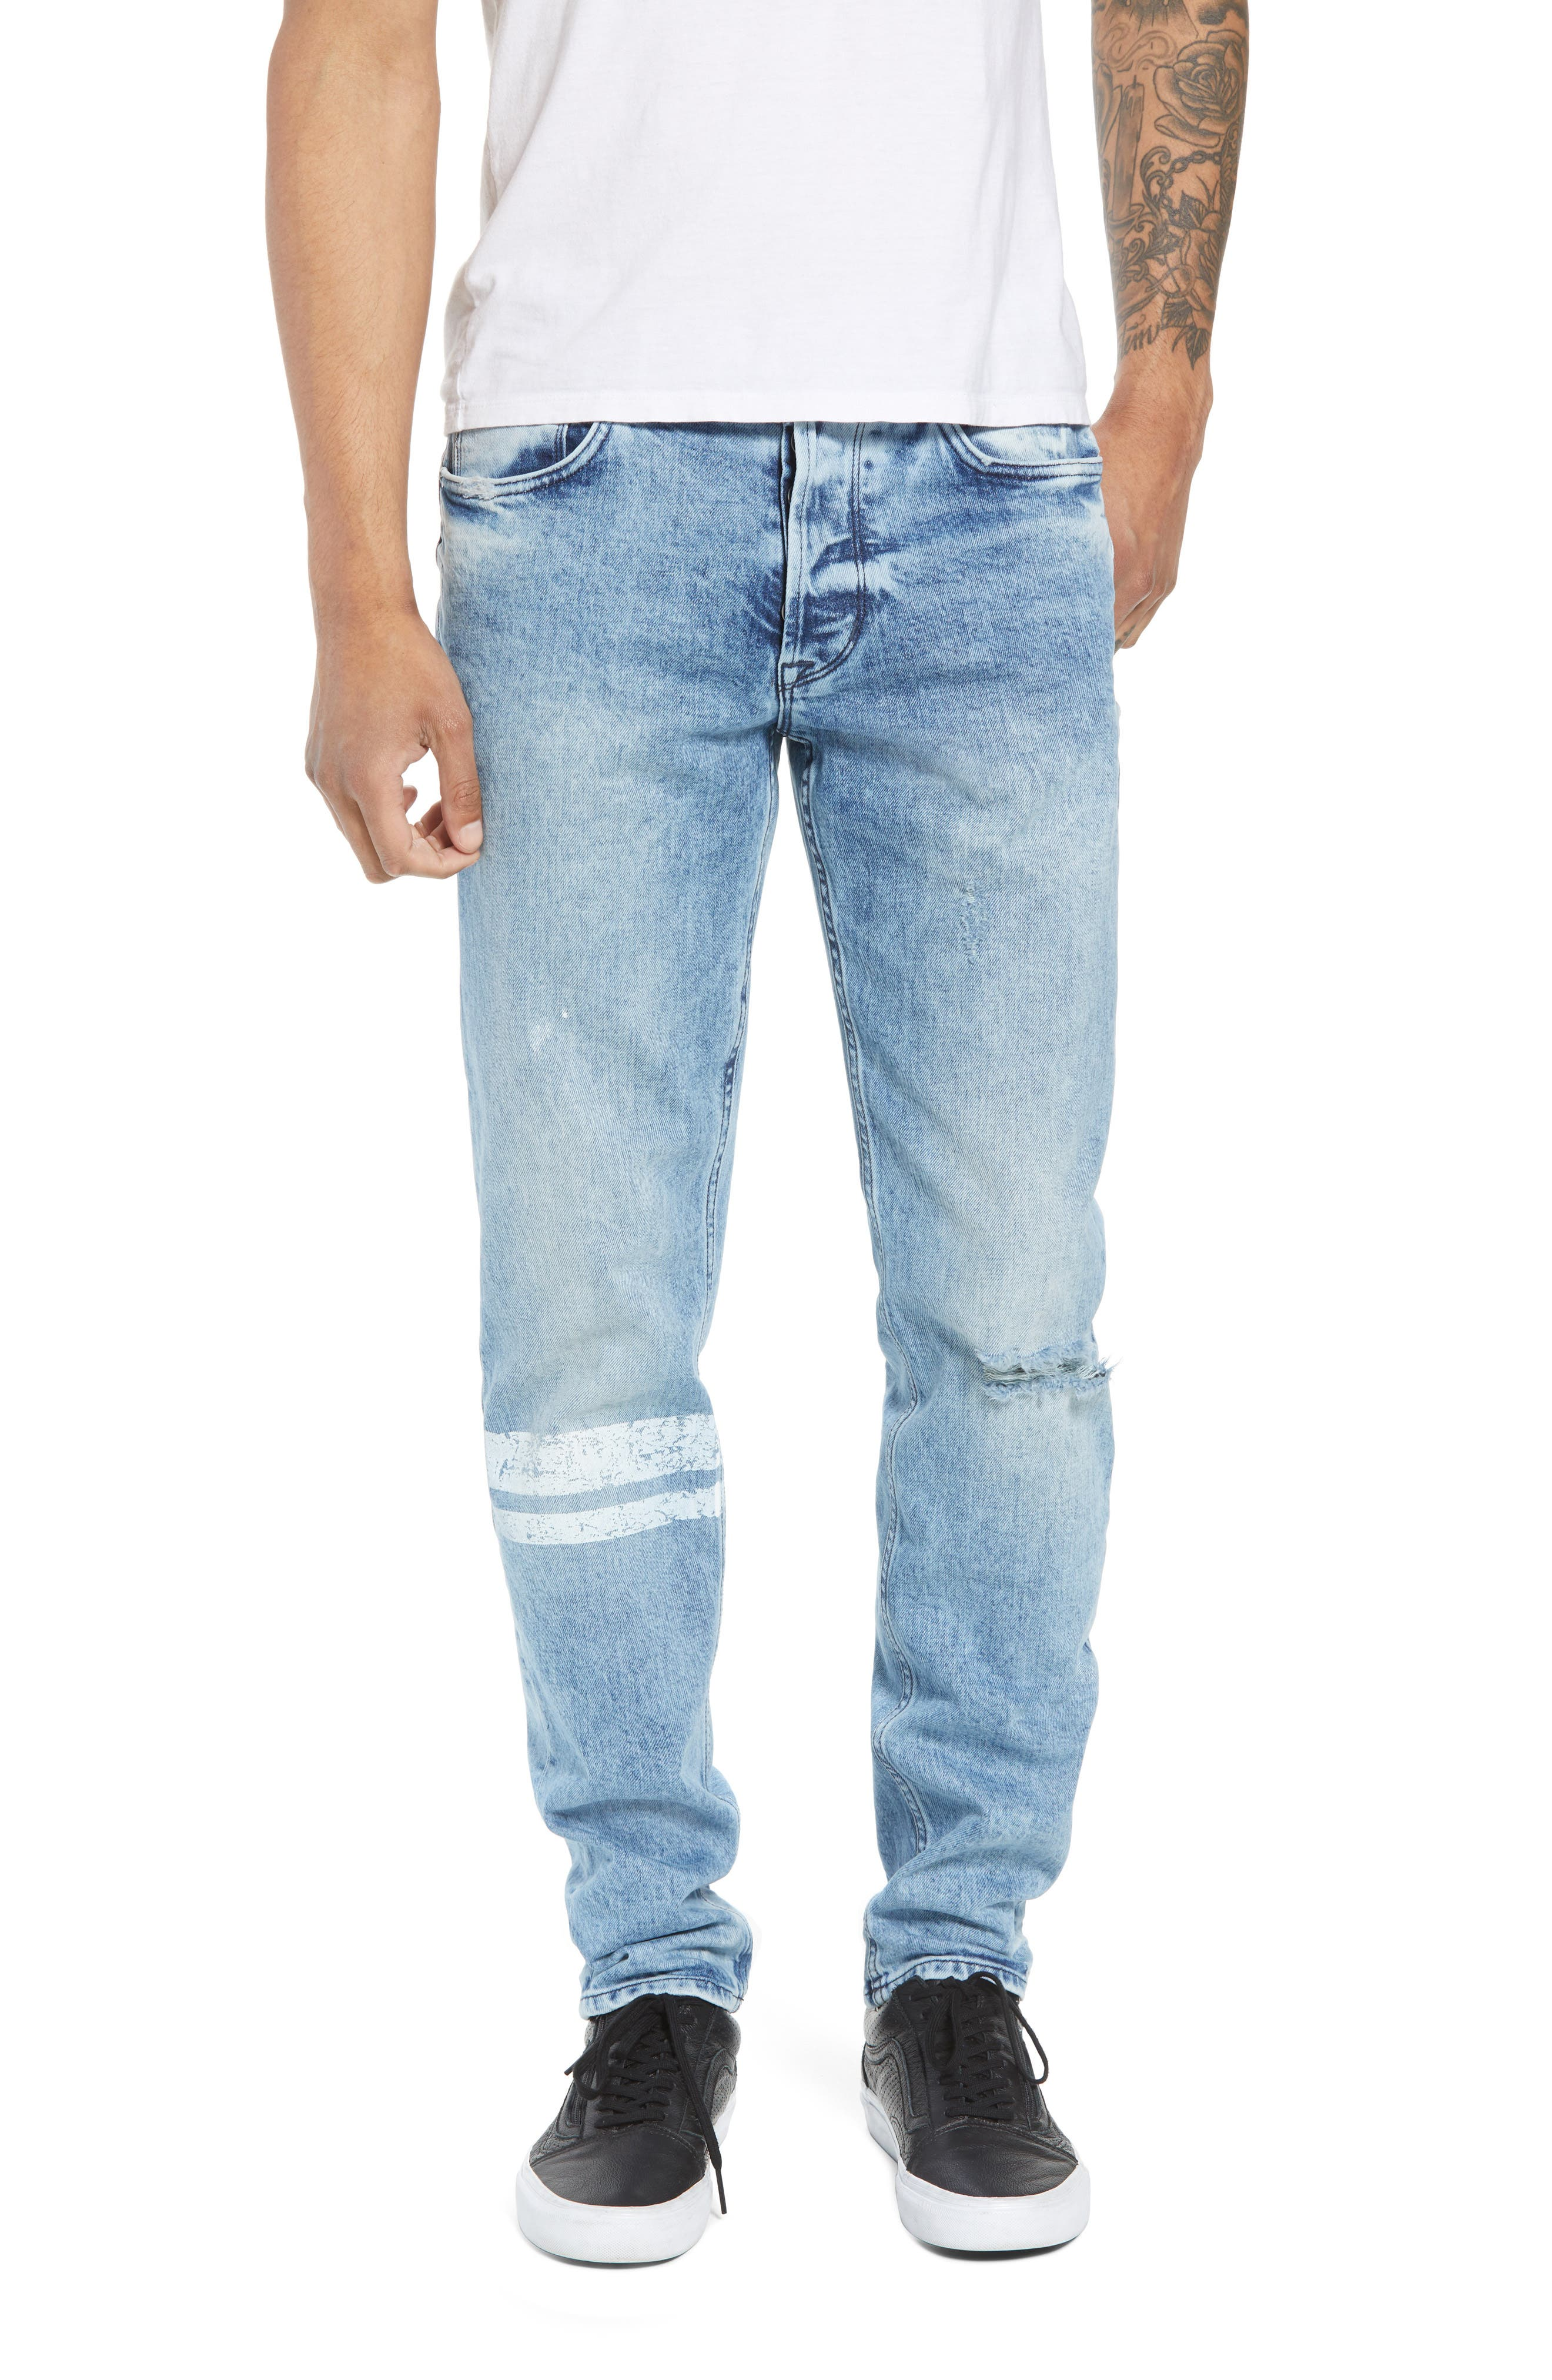 Sartor Slouchy Skinny Fit Jeans,                         Main,                         color, Wild Nothing